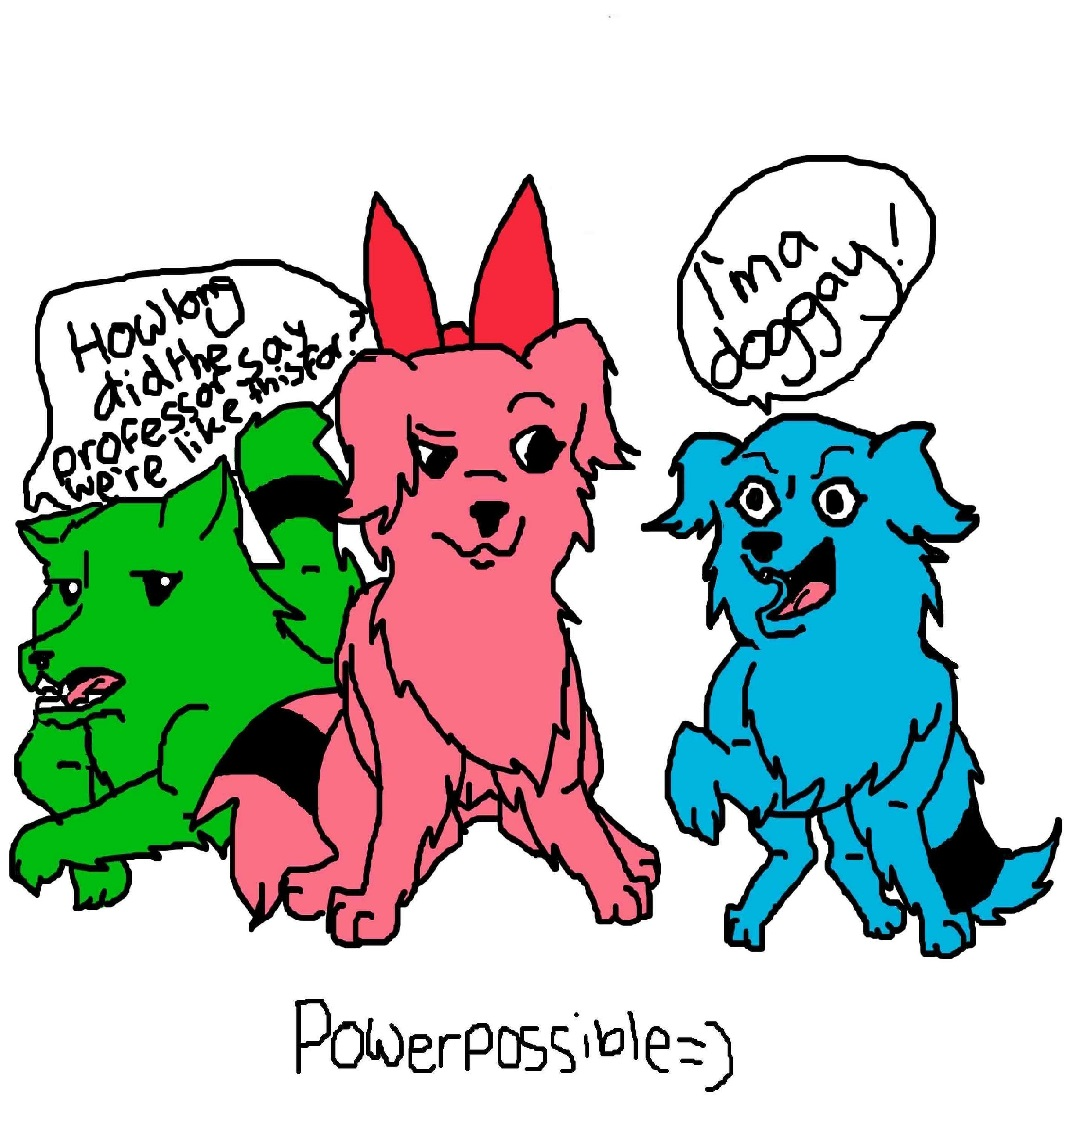 For-Powerpossible-powerpuff-and-rowdyruff-animals-10071275-2560-2560